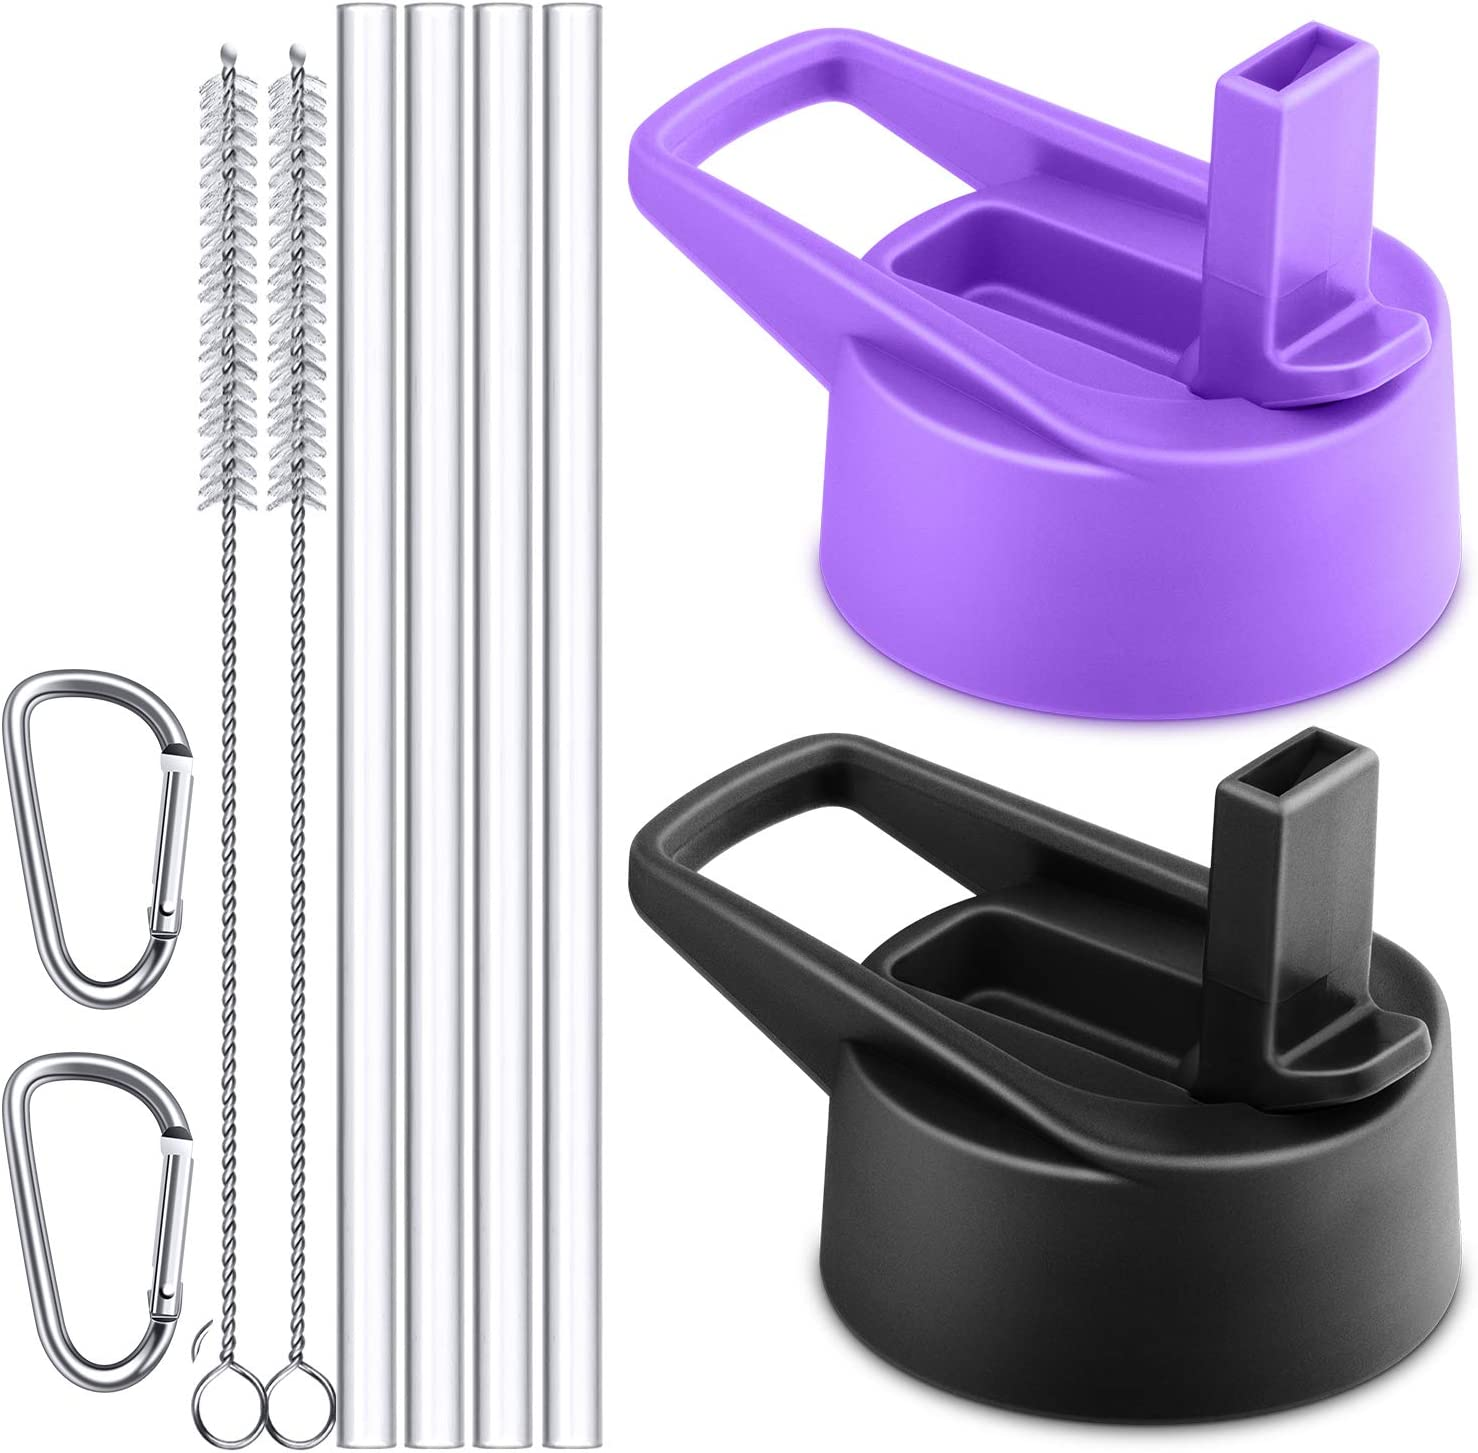 Sunnywoo Straw Lid for Hydro Flask Wide Mouth Bottle and Most Wide Mouth Sports Water Bottle,Replacemen Lids with 4 Straws 2 Brushes and 2 Carabiner-2 Pack (Black,Purple)